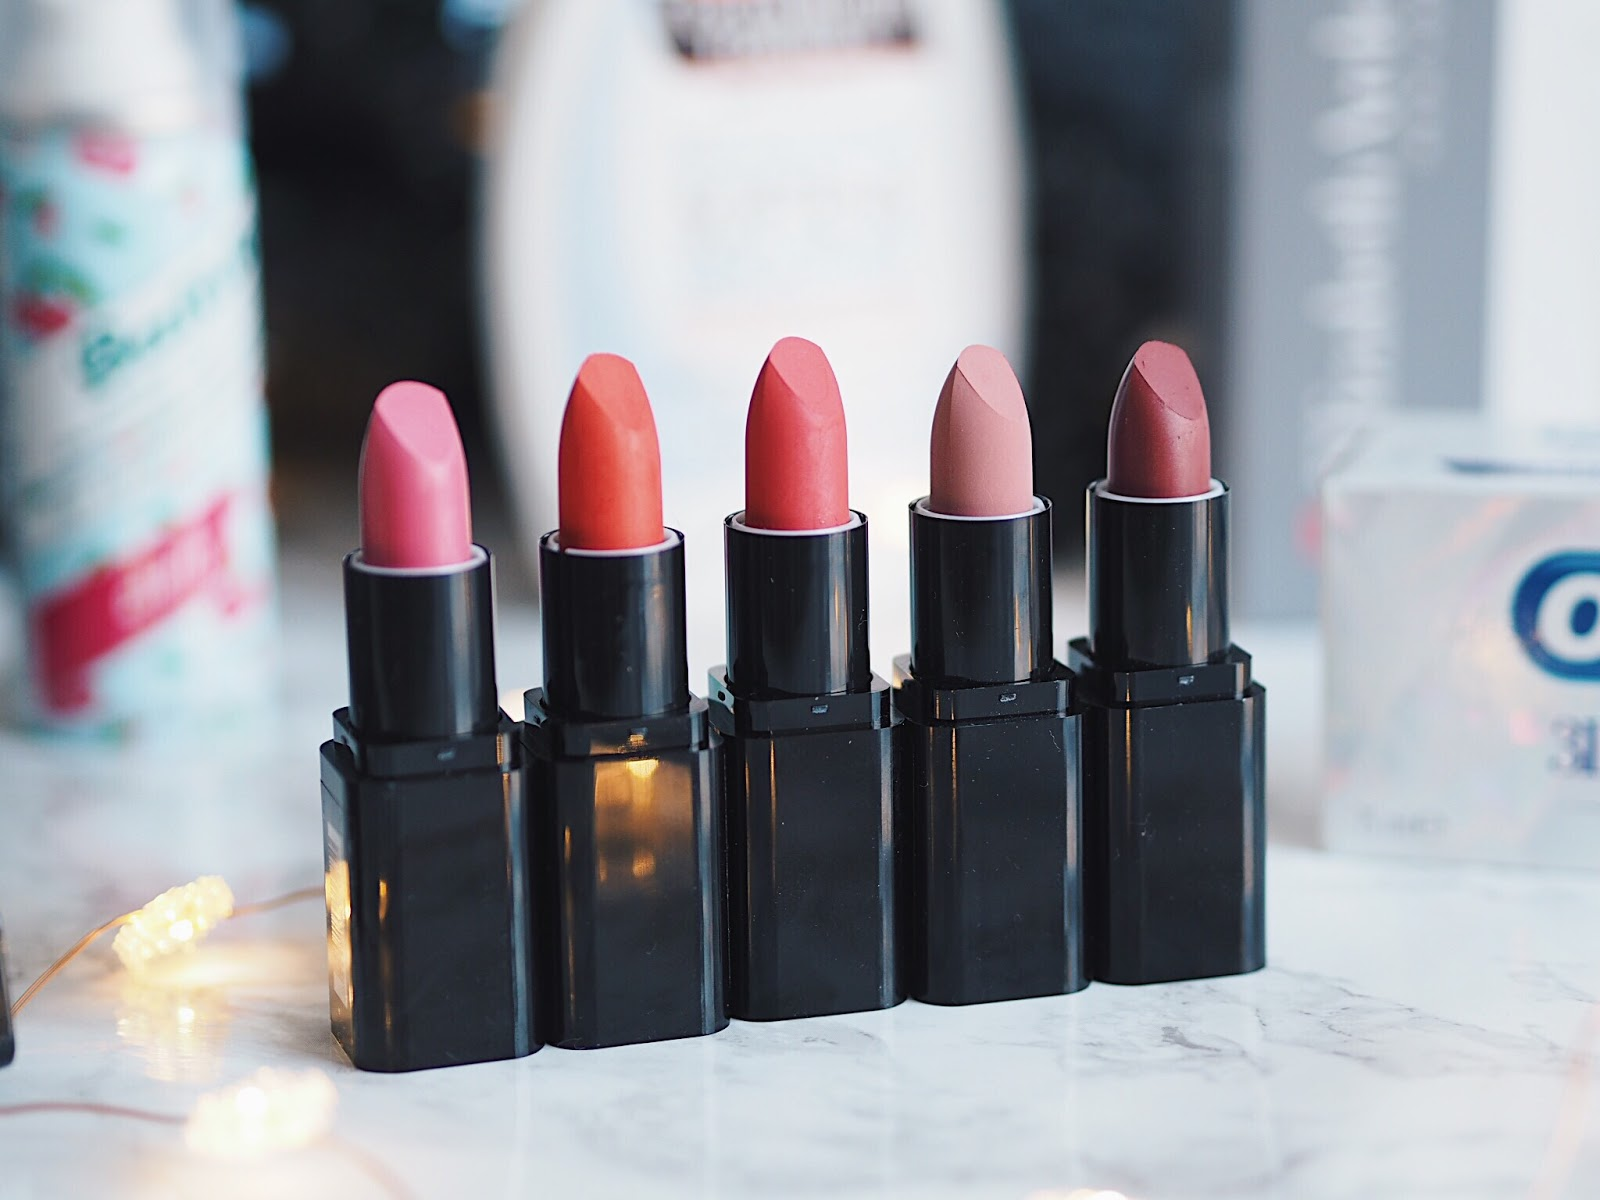 Calvin Klein luxury lipsticks